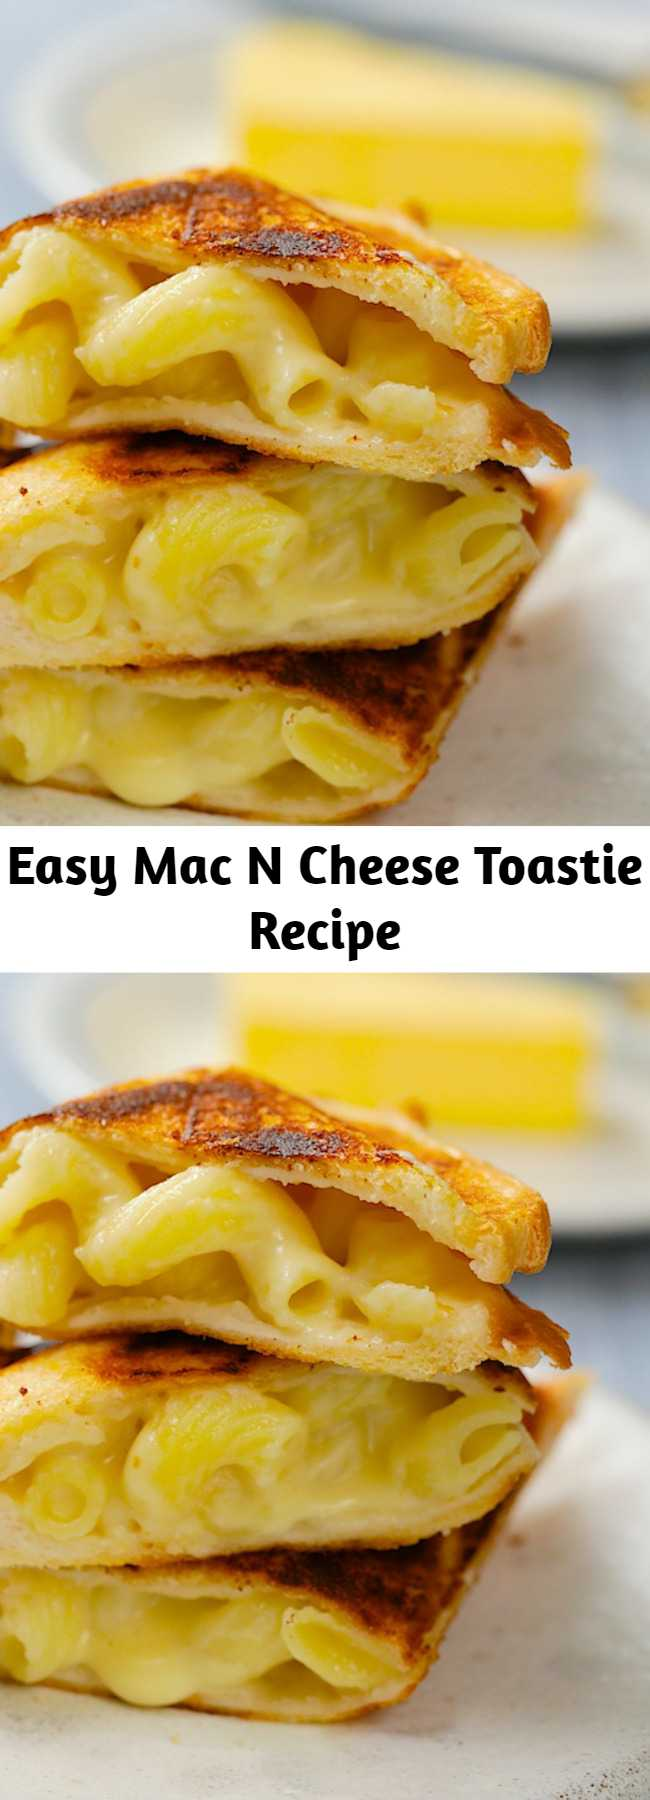 Easy Mac N Cheese Toastie Recipe - What's a better match than a mac n cheese toastie? Was there ever a better match?